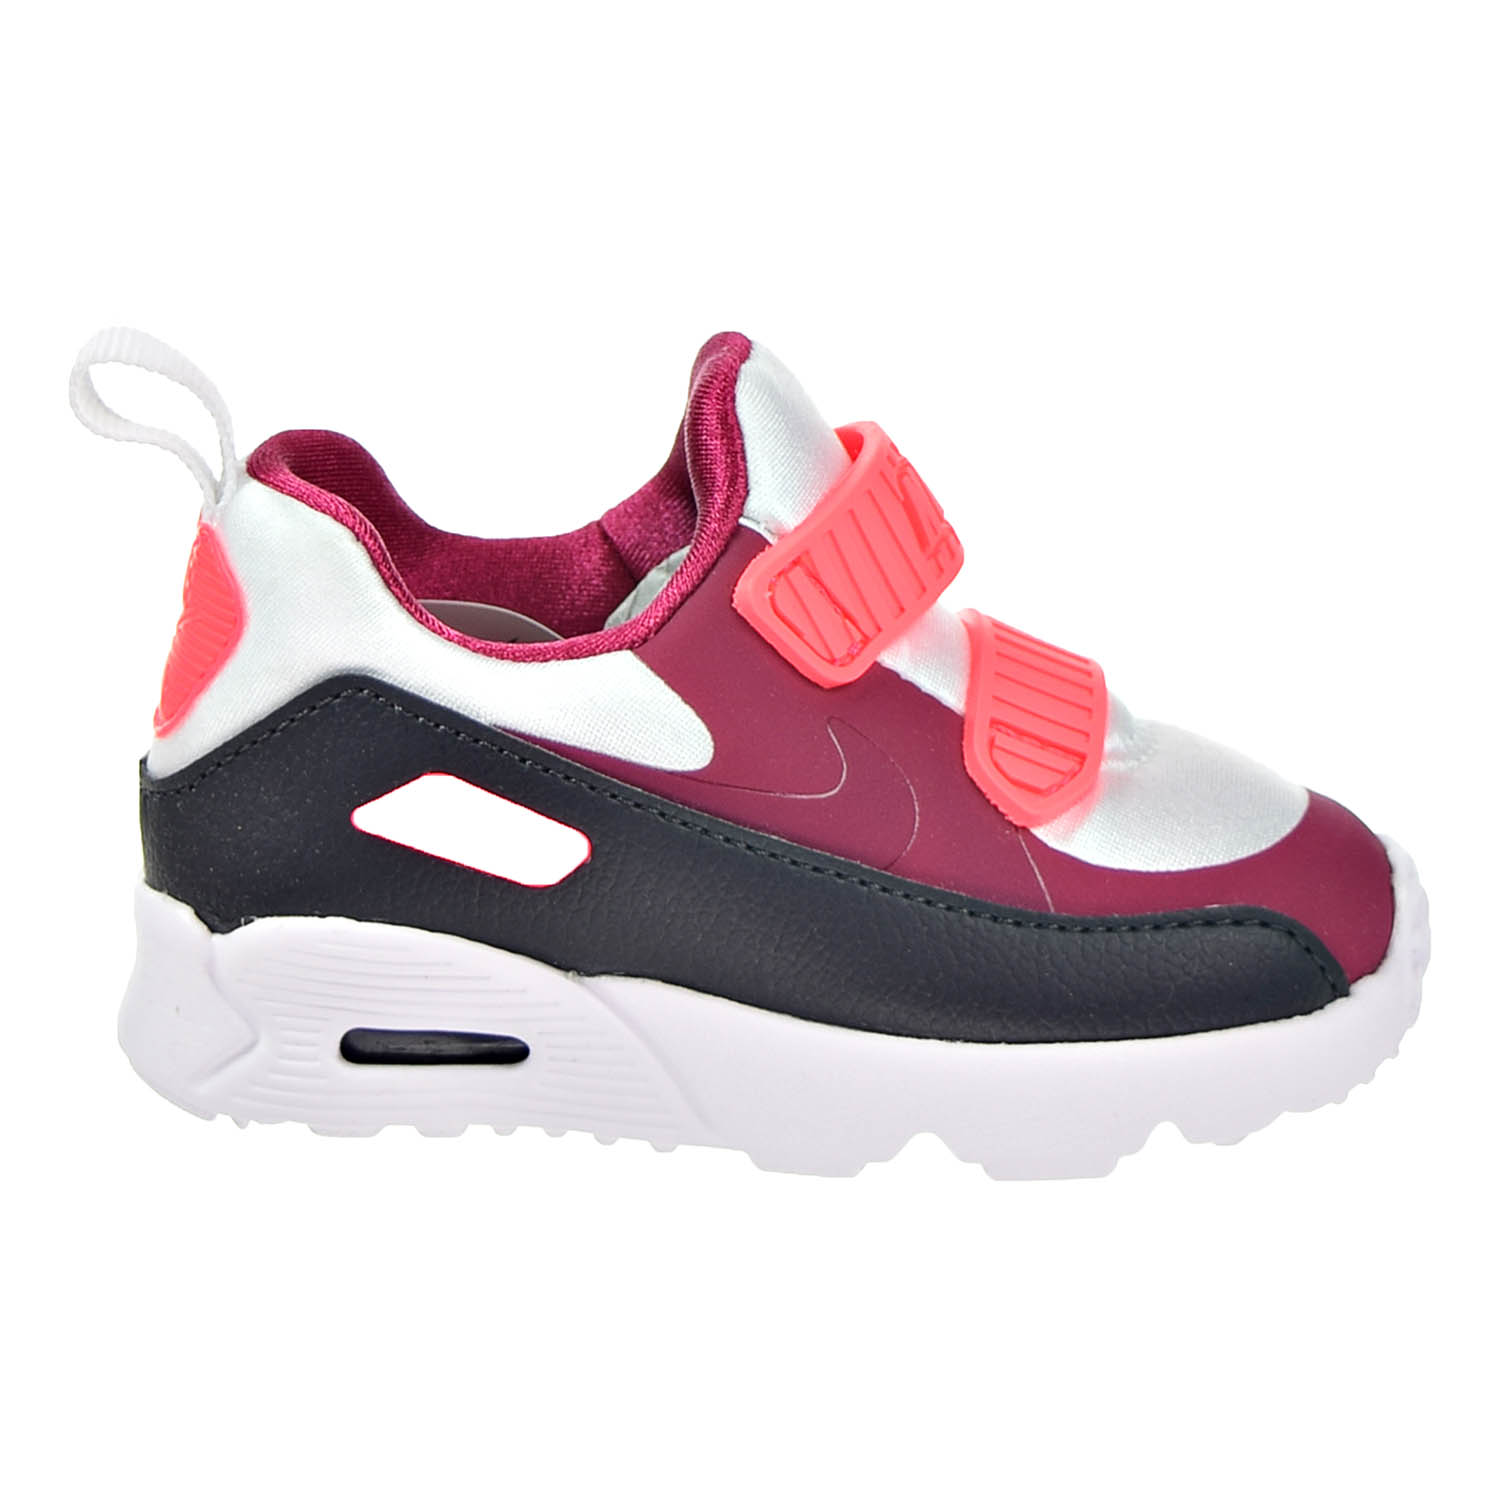 Details about Nike Air Max Tiny 90 Toddlers' Shoes White Noble Red Anthracite 881924 101